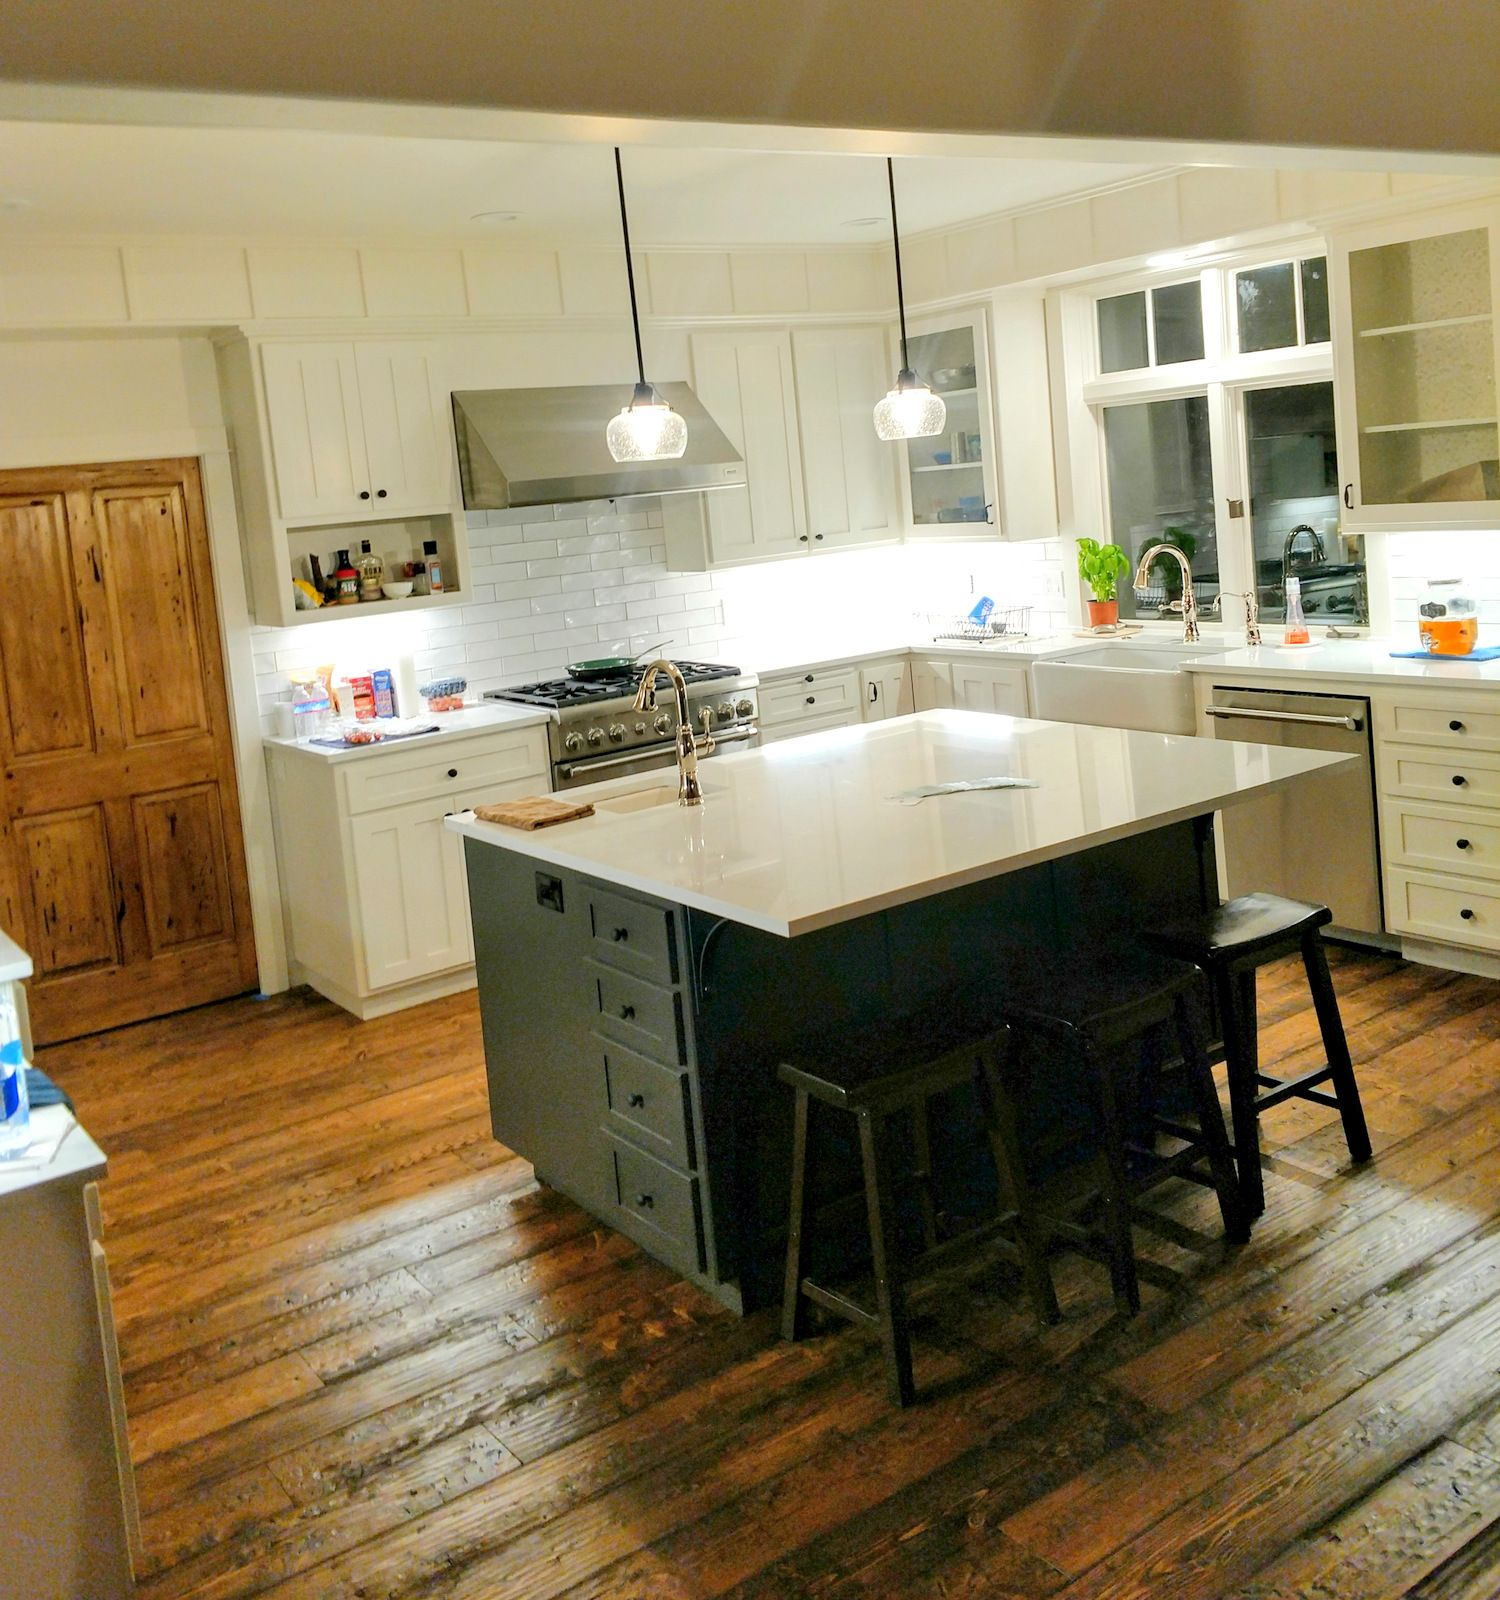 Rustic Hardwood Flooring Tips And Suggestion: Love This Kitchen Sent In From A Customer In Bend Oregon